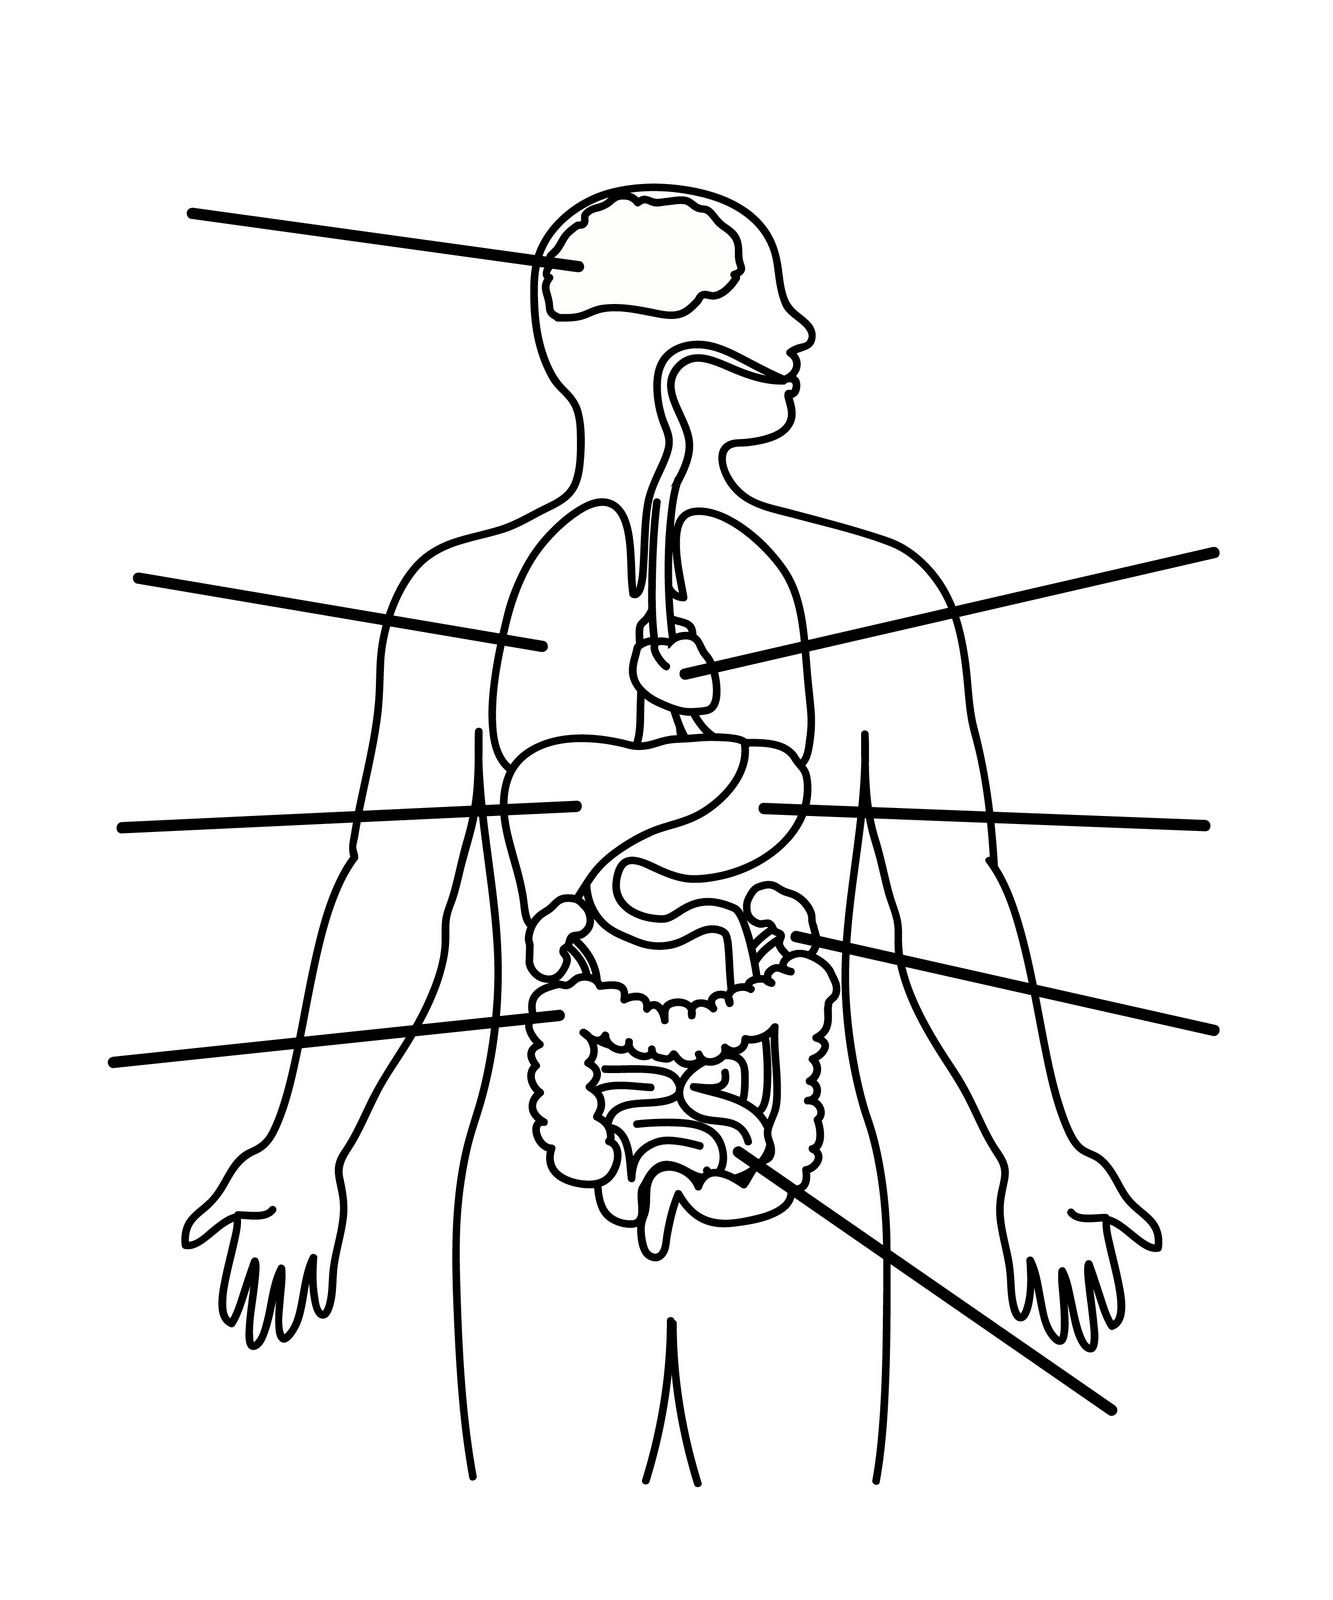 1333x1600 Unique Human Body System Coloring Pages Design Printable